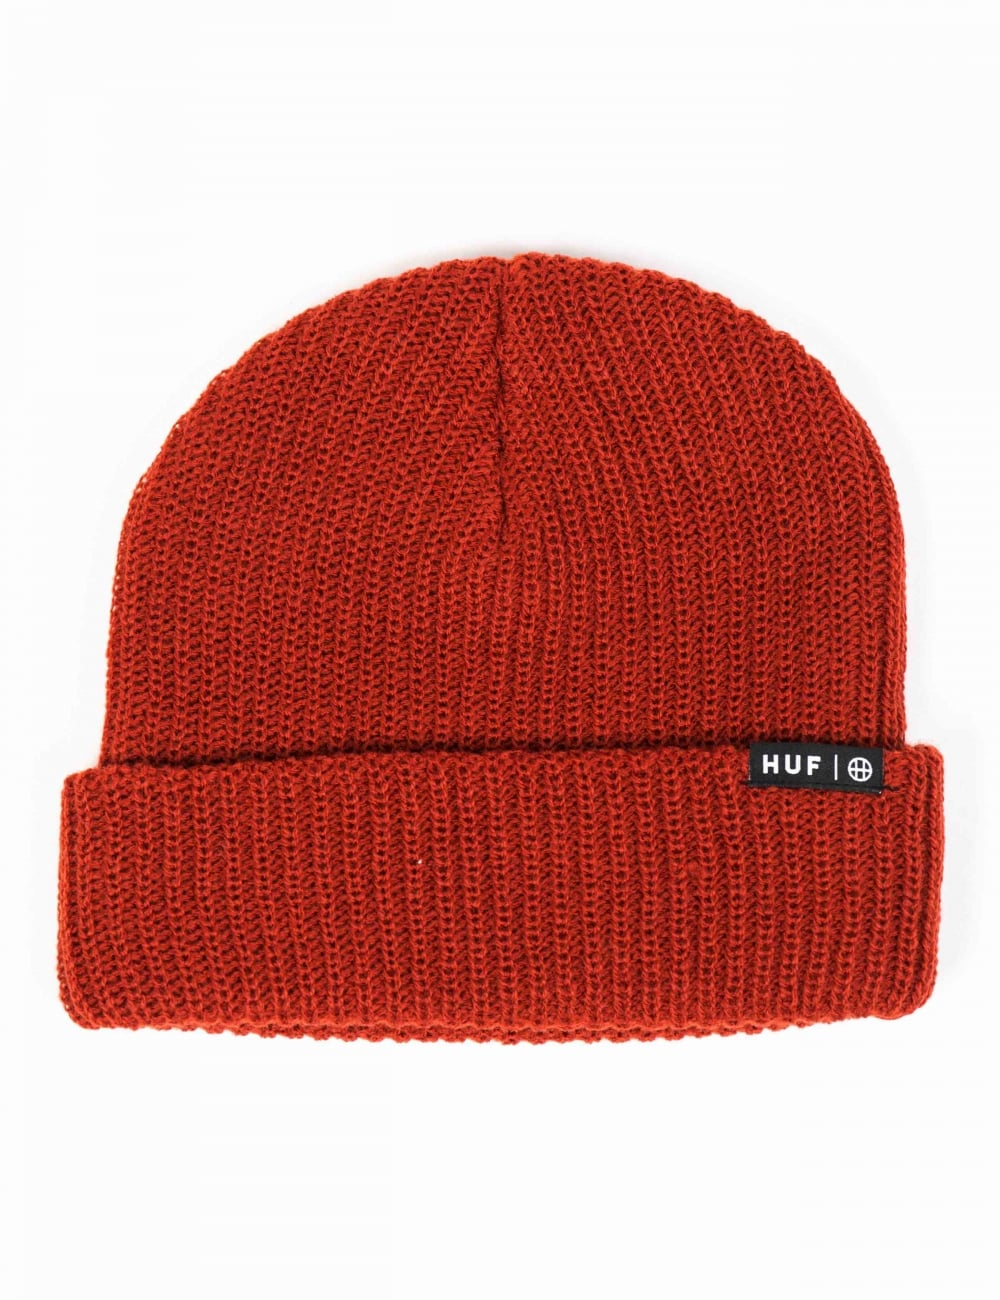 1a7c41d64d4 Huf Usual Beanie - Rust - Accessories from Fat Buddha Store UK